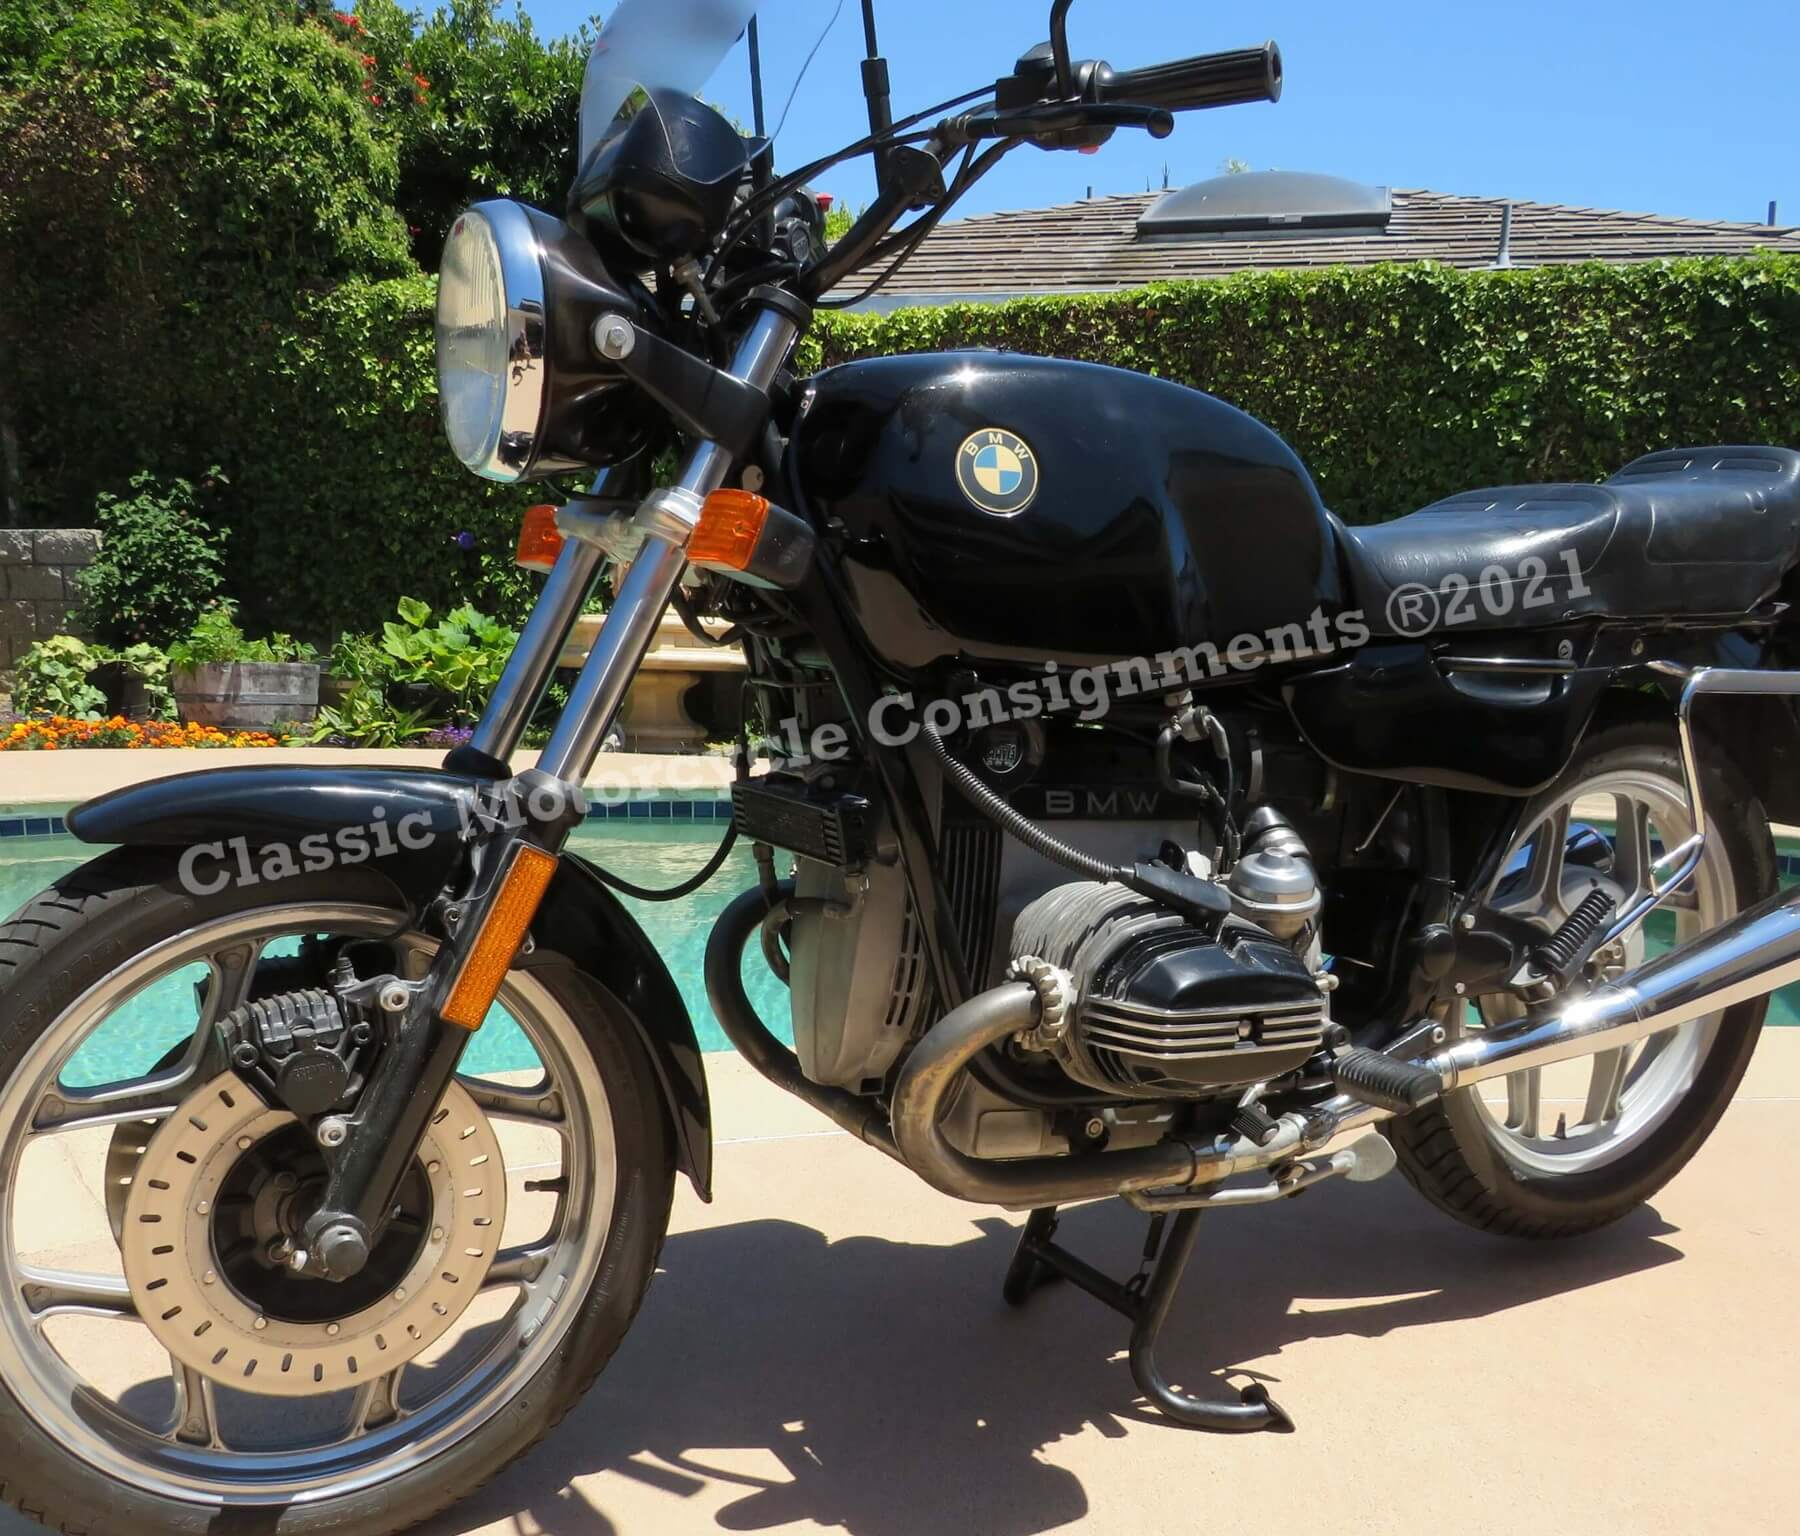 1989 BMW R100 RT Motorcycle